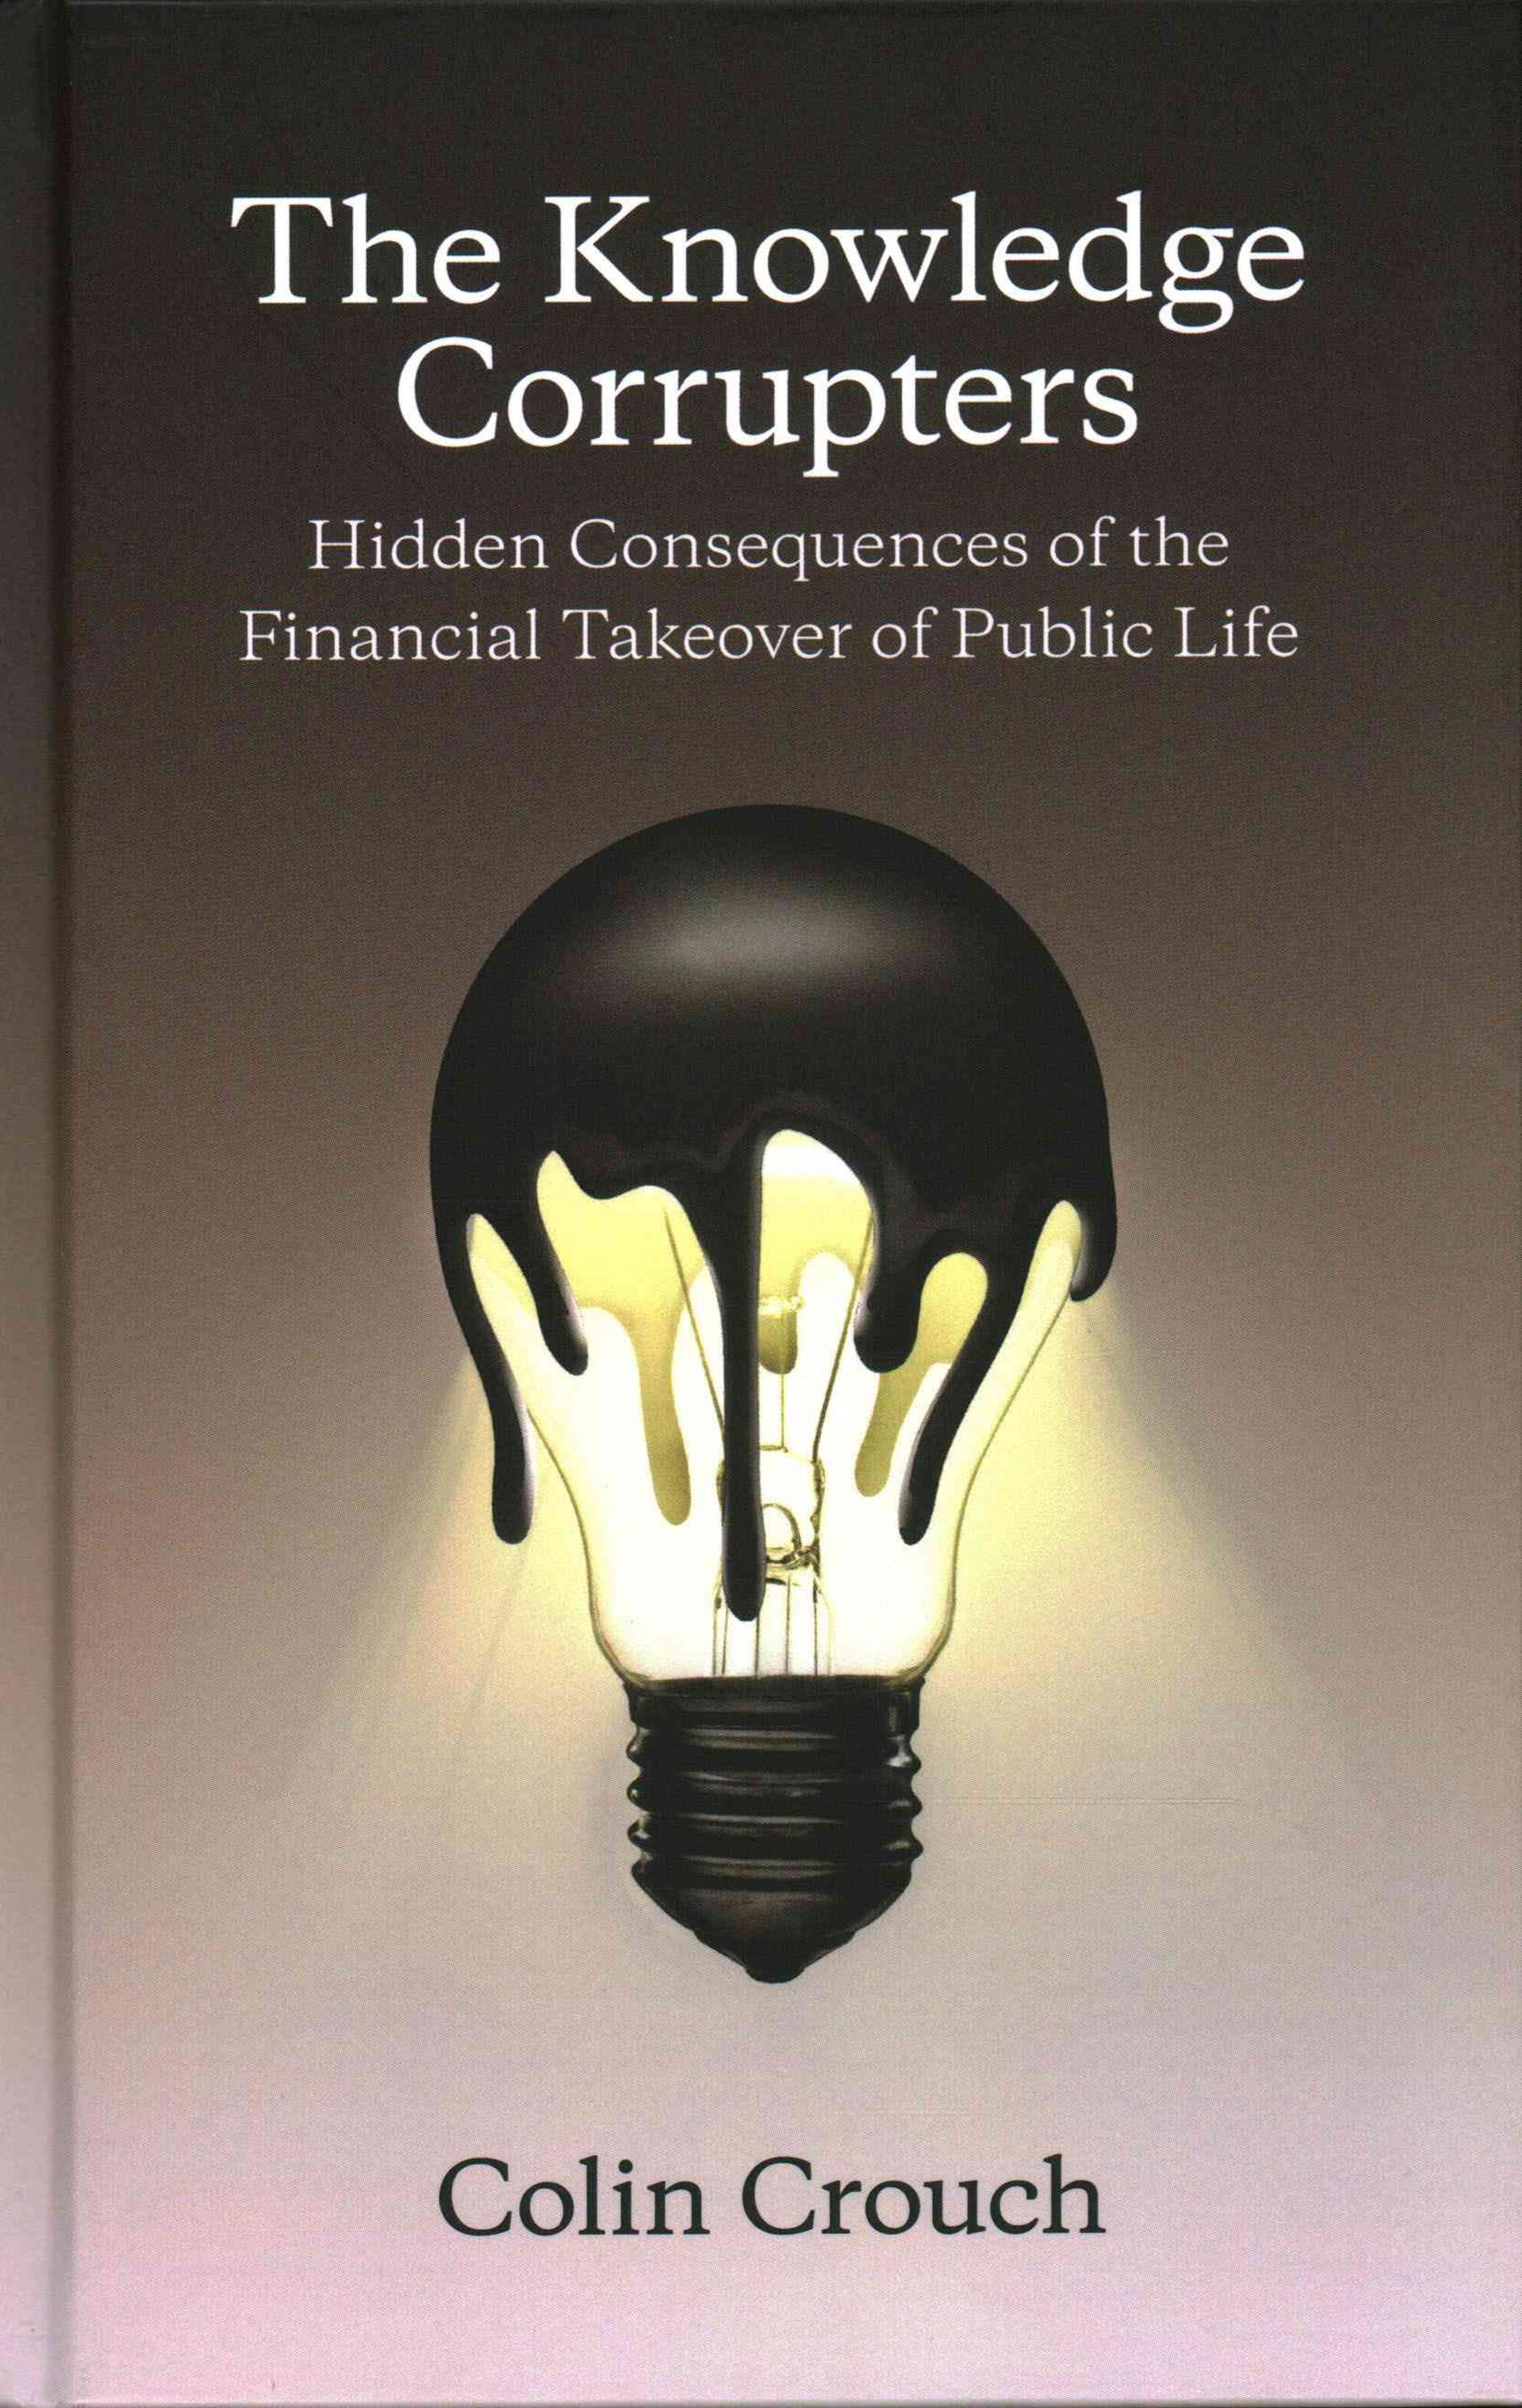 The Knowledge Corrupters - Hidden Consequences of the Financial Takeover of Public Life